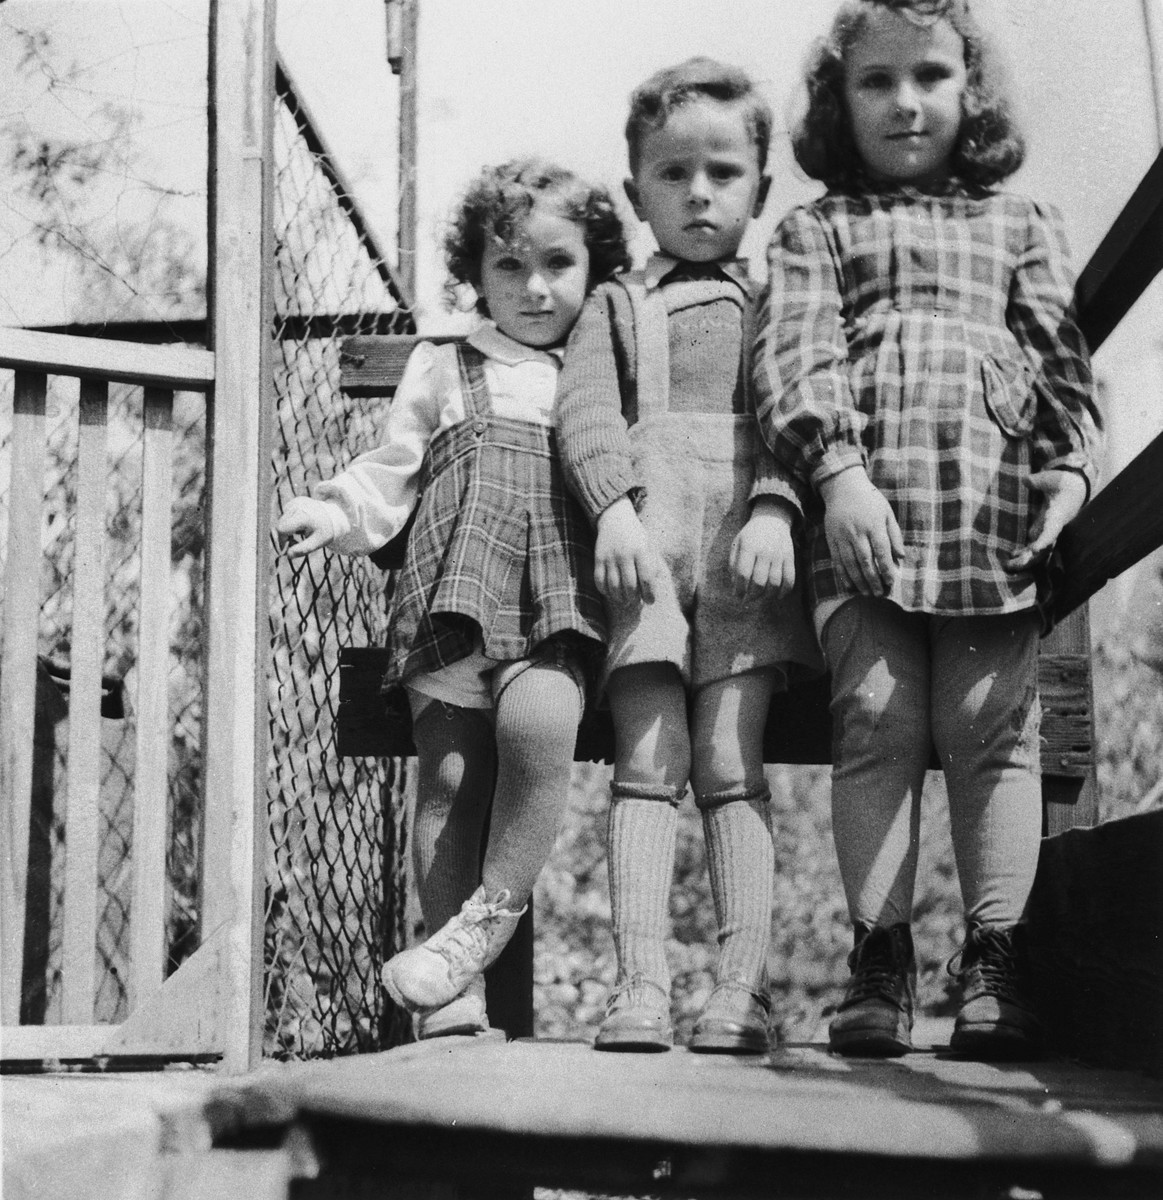 Three young children pose outside next to a fence in the Wasseralfingen DP camp.  Pictured are Pauline, Joseph and Rita Slepian.